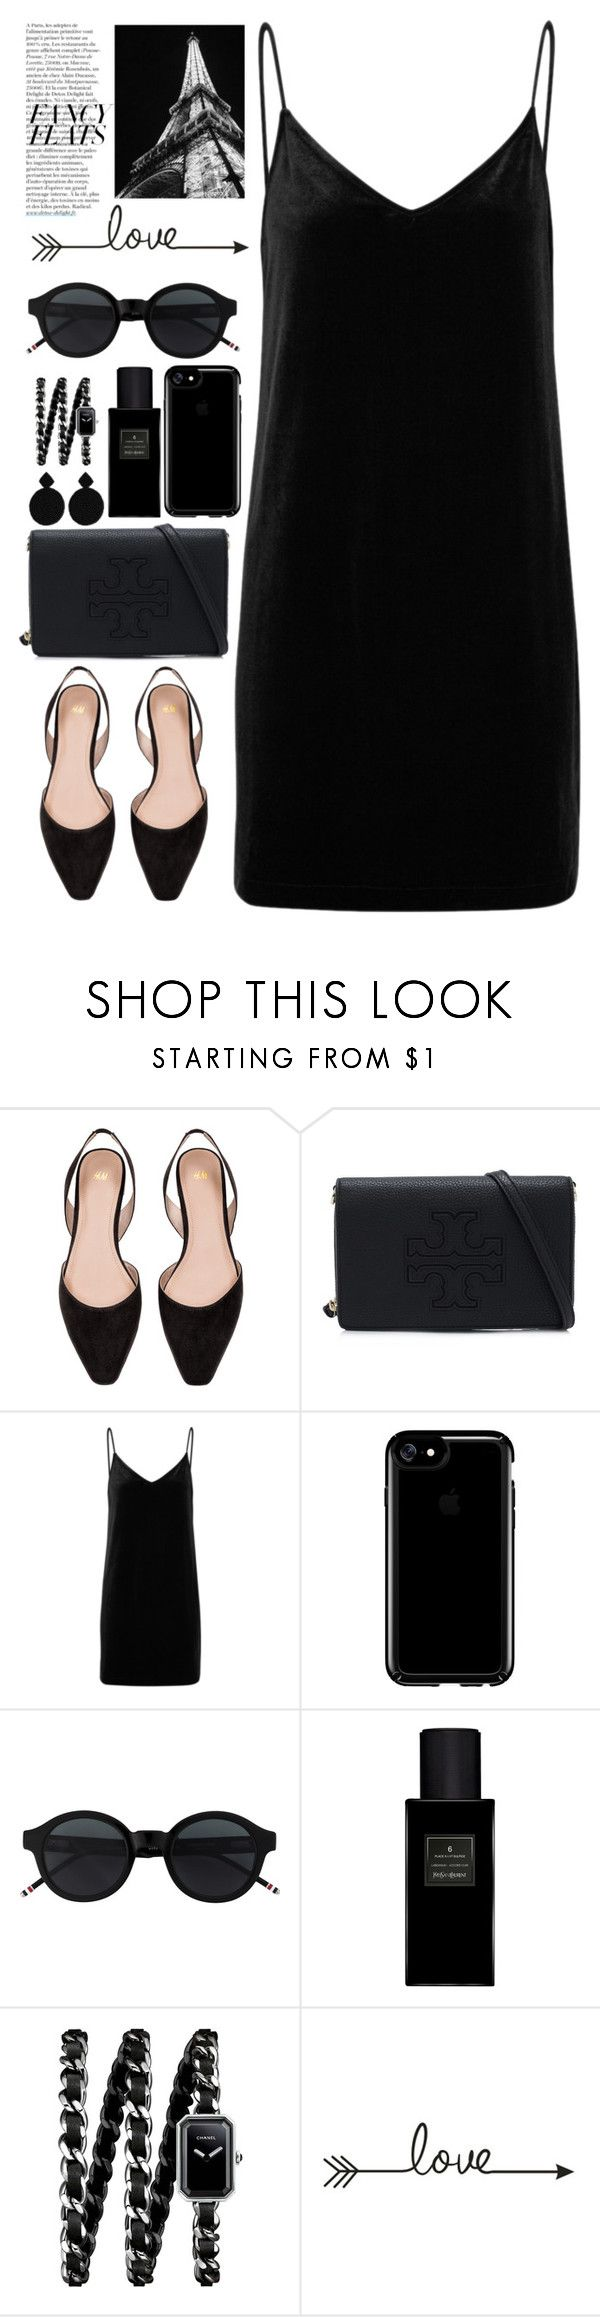 """black fancy flats ⚫⚫⚫♡♡♡"" by licethfashion ❤ liked on Polyvore featuring H&M, Tory Burch, rag & bone/JEAN, Speck, Yves Saint Laurent, Chanel, Kenneth Jay Lane, Anja and chicflats"